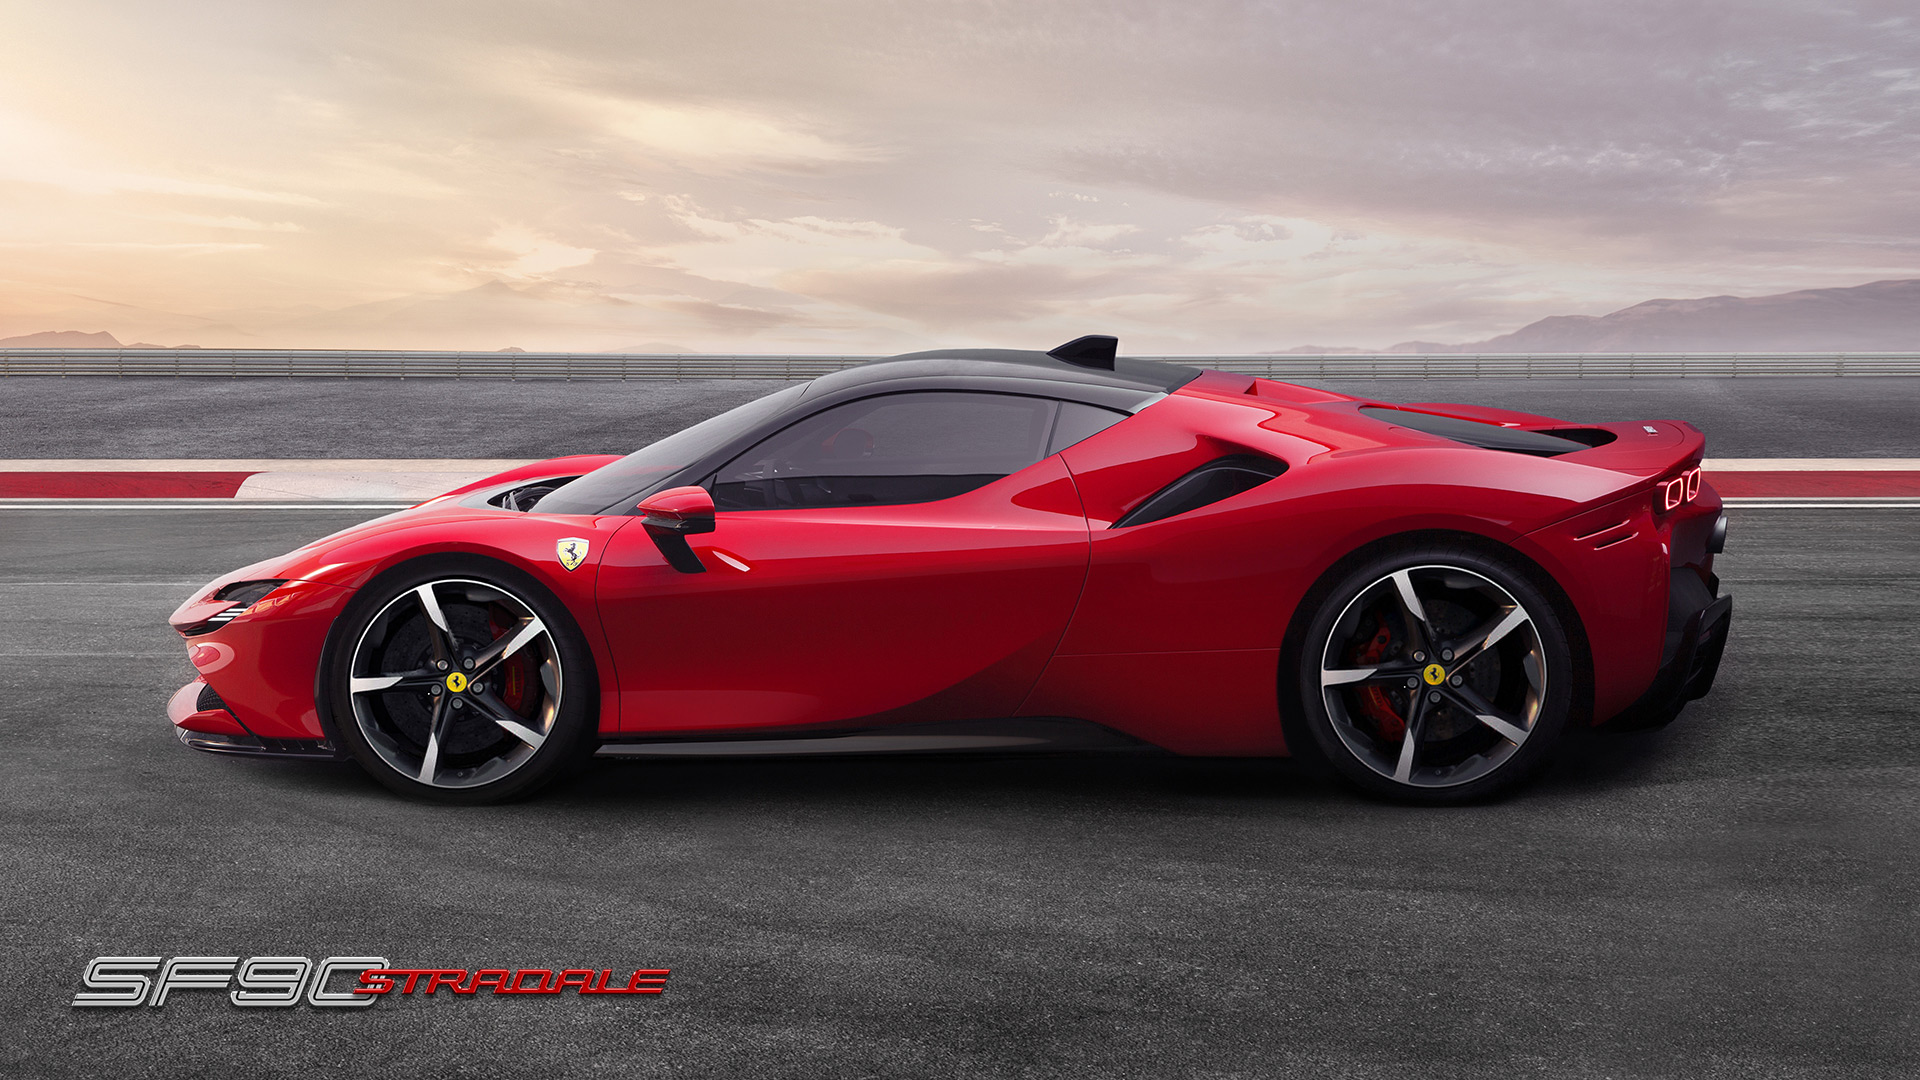 Ferrari shows how man and machine build the SF90 Stradale